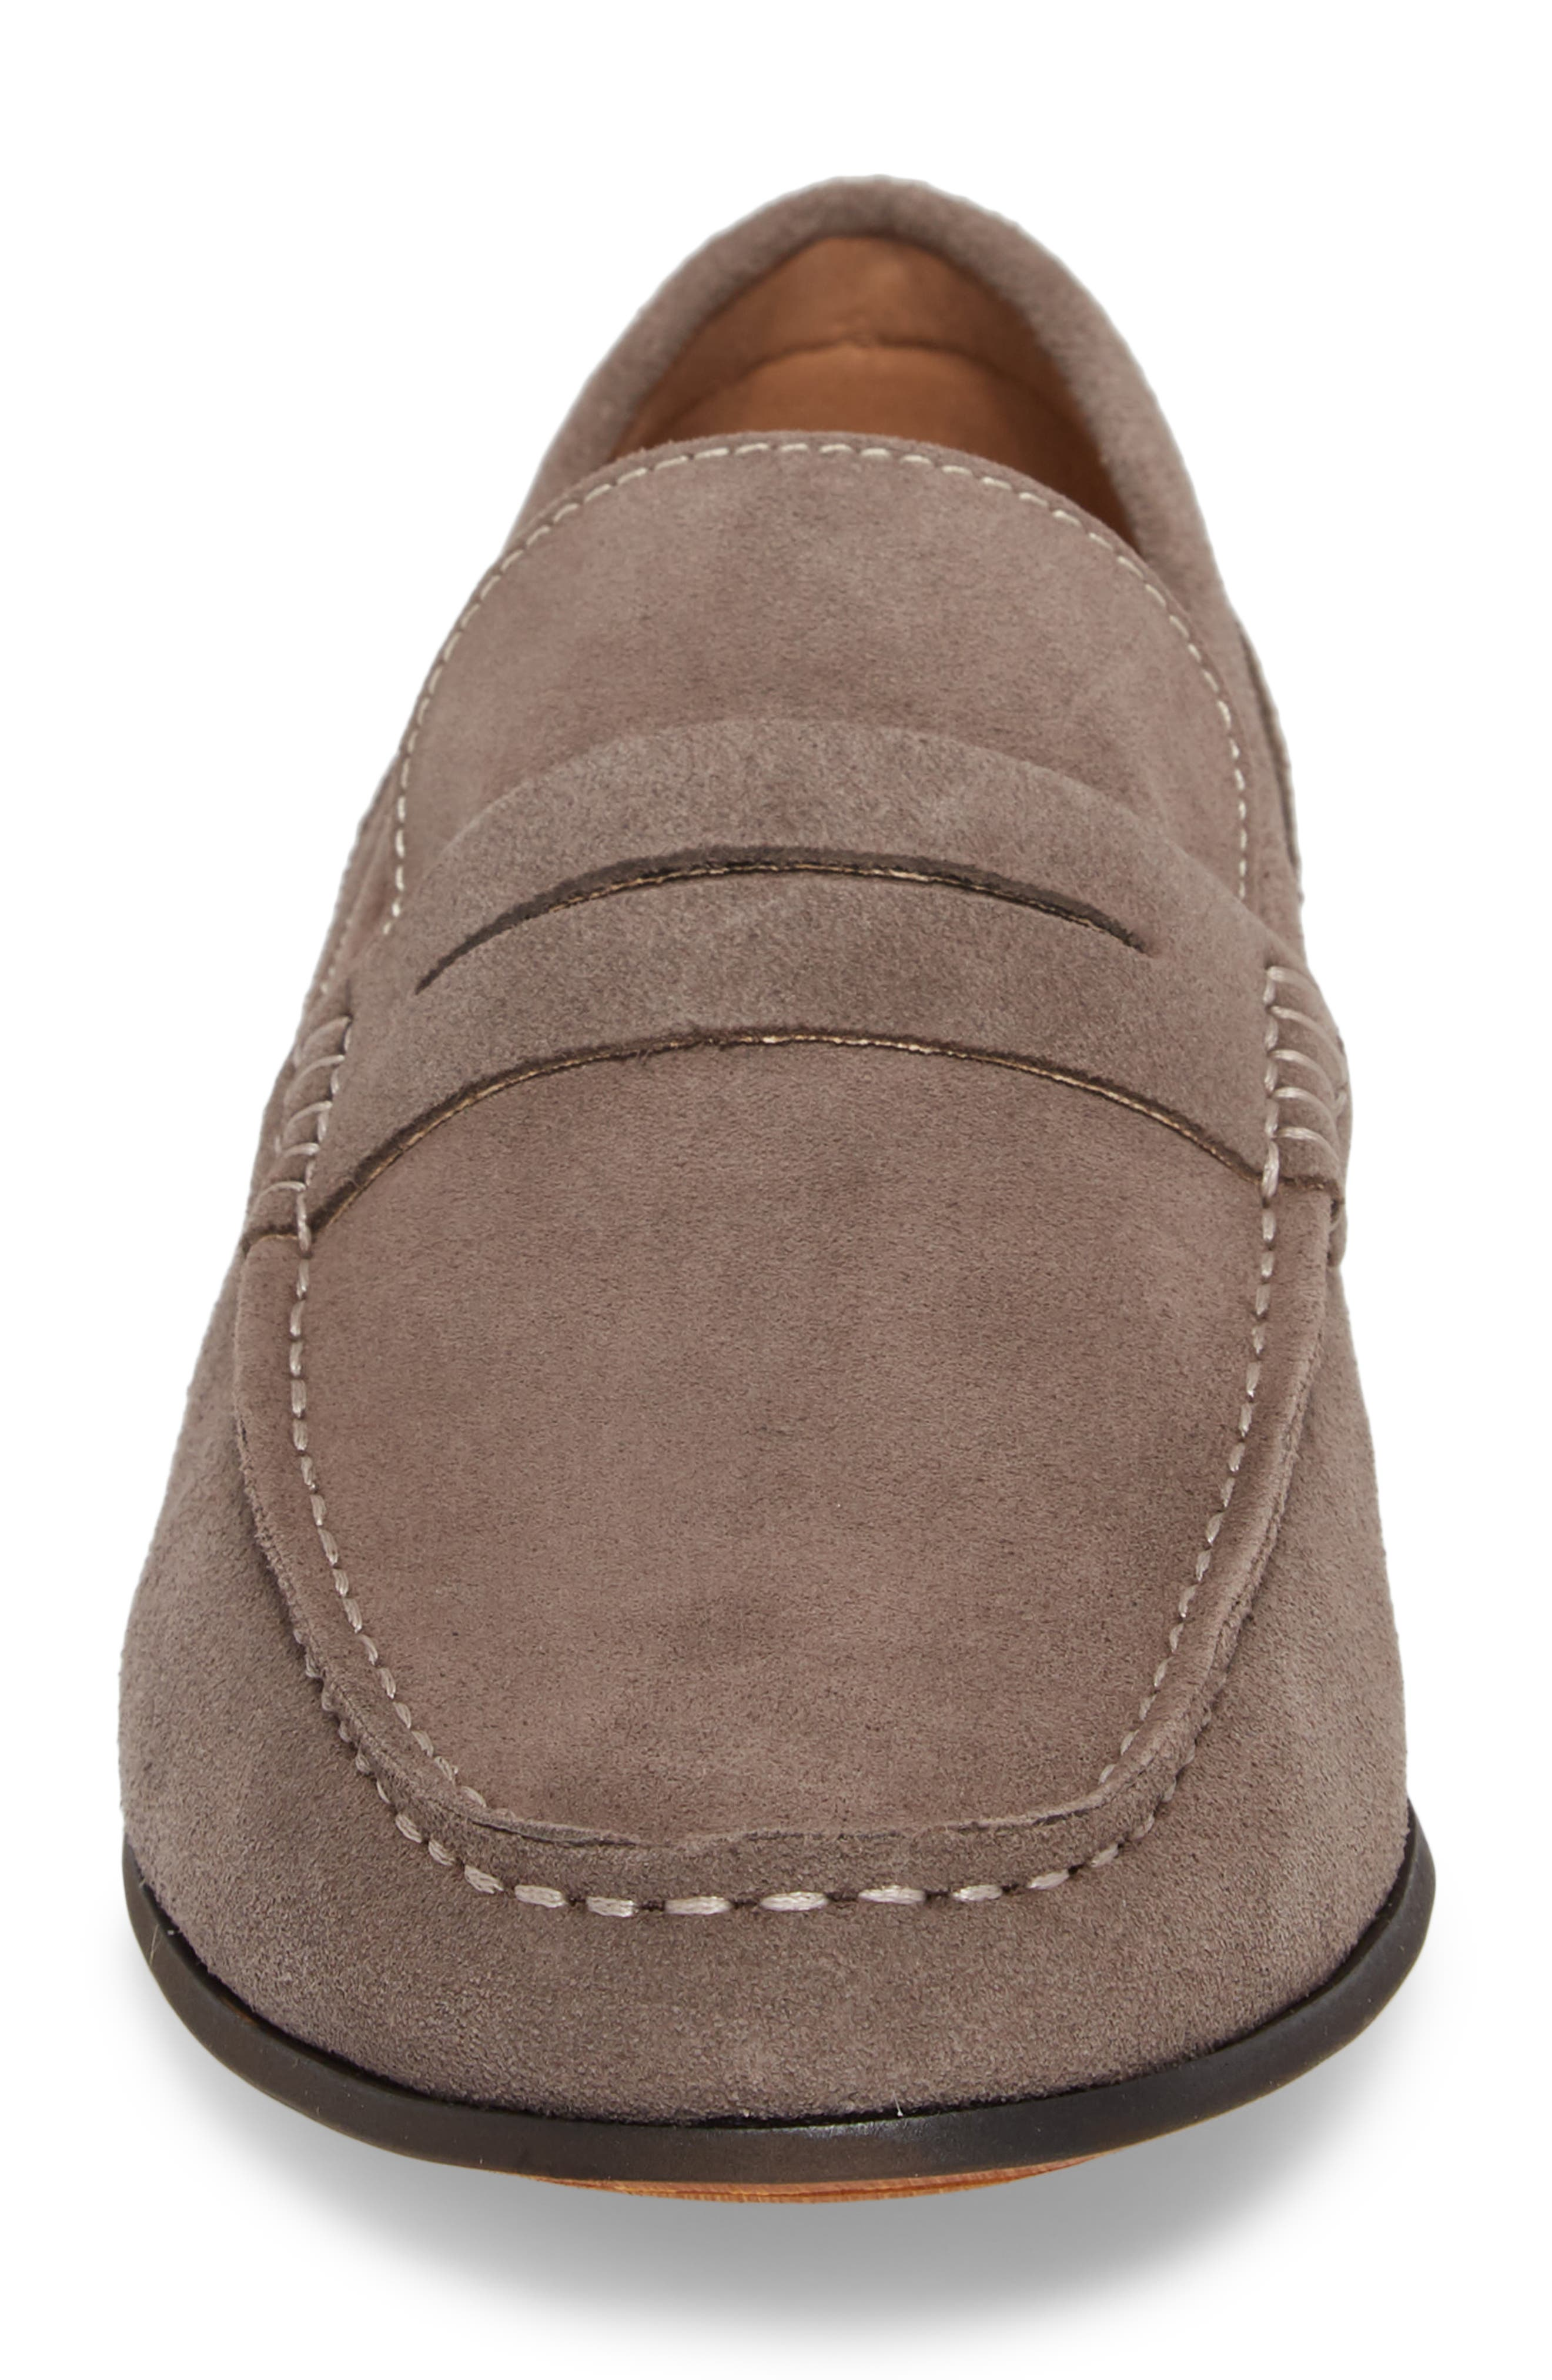 Crespo Penny Loafer,                             Alternate thumbnail 4, color,                             Grey